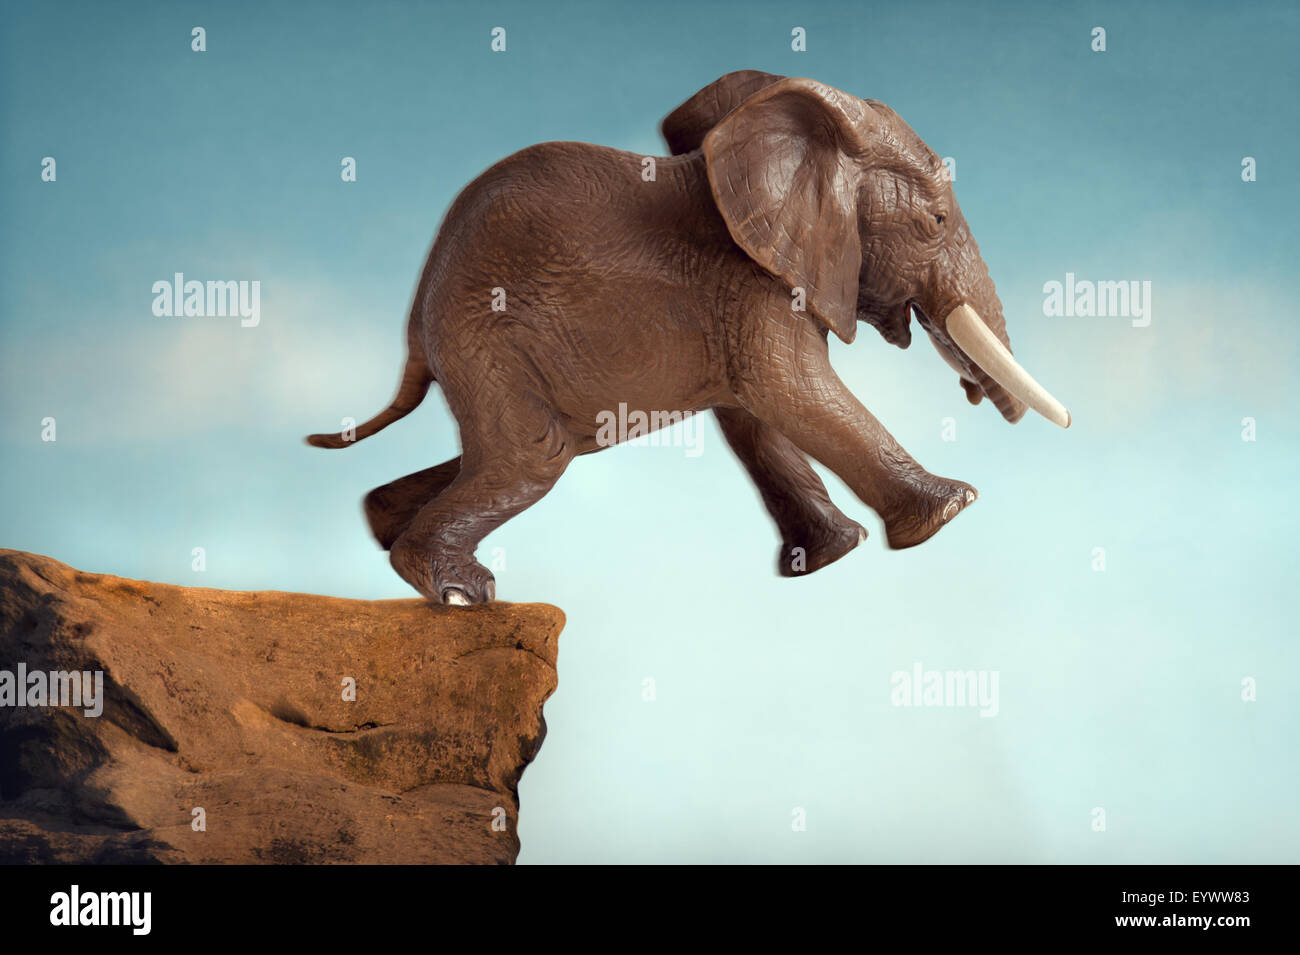 leap of faith concept elephant jumping into a void - Stock Image